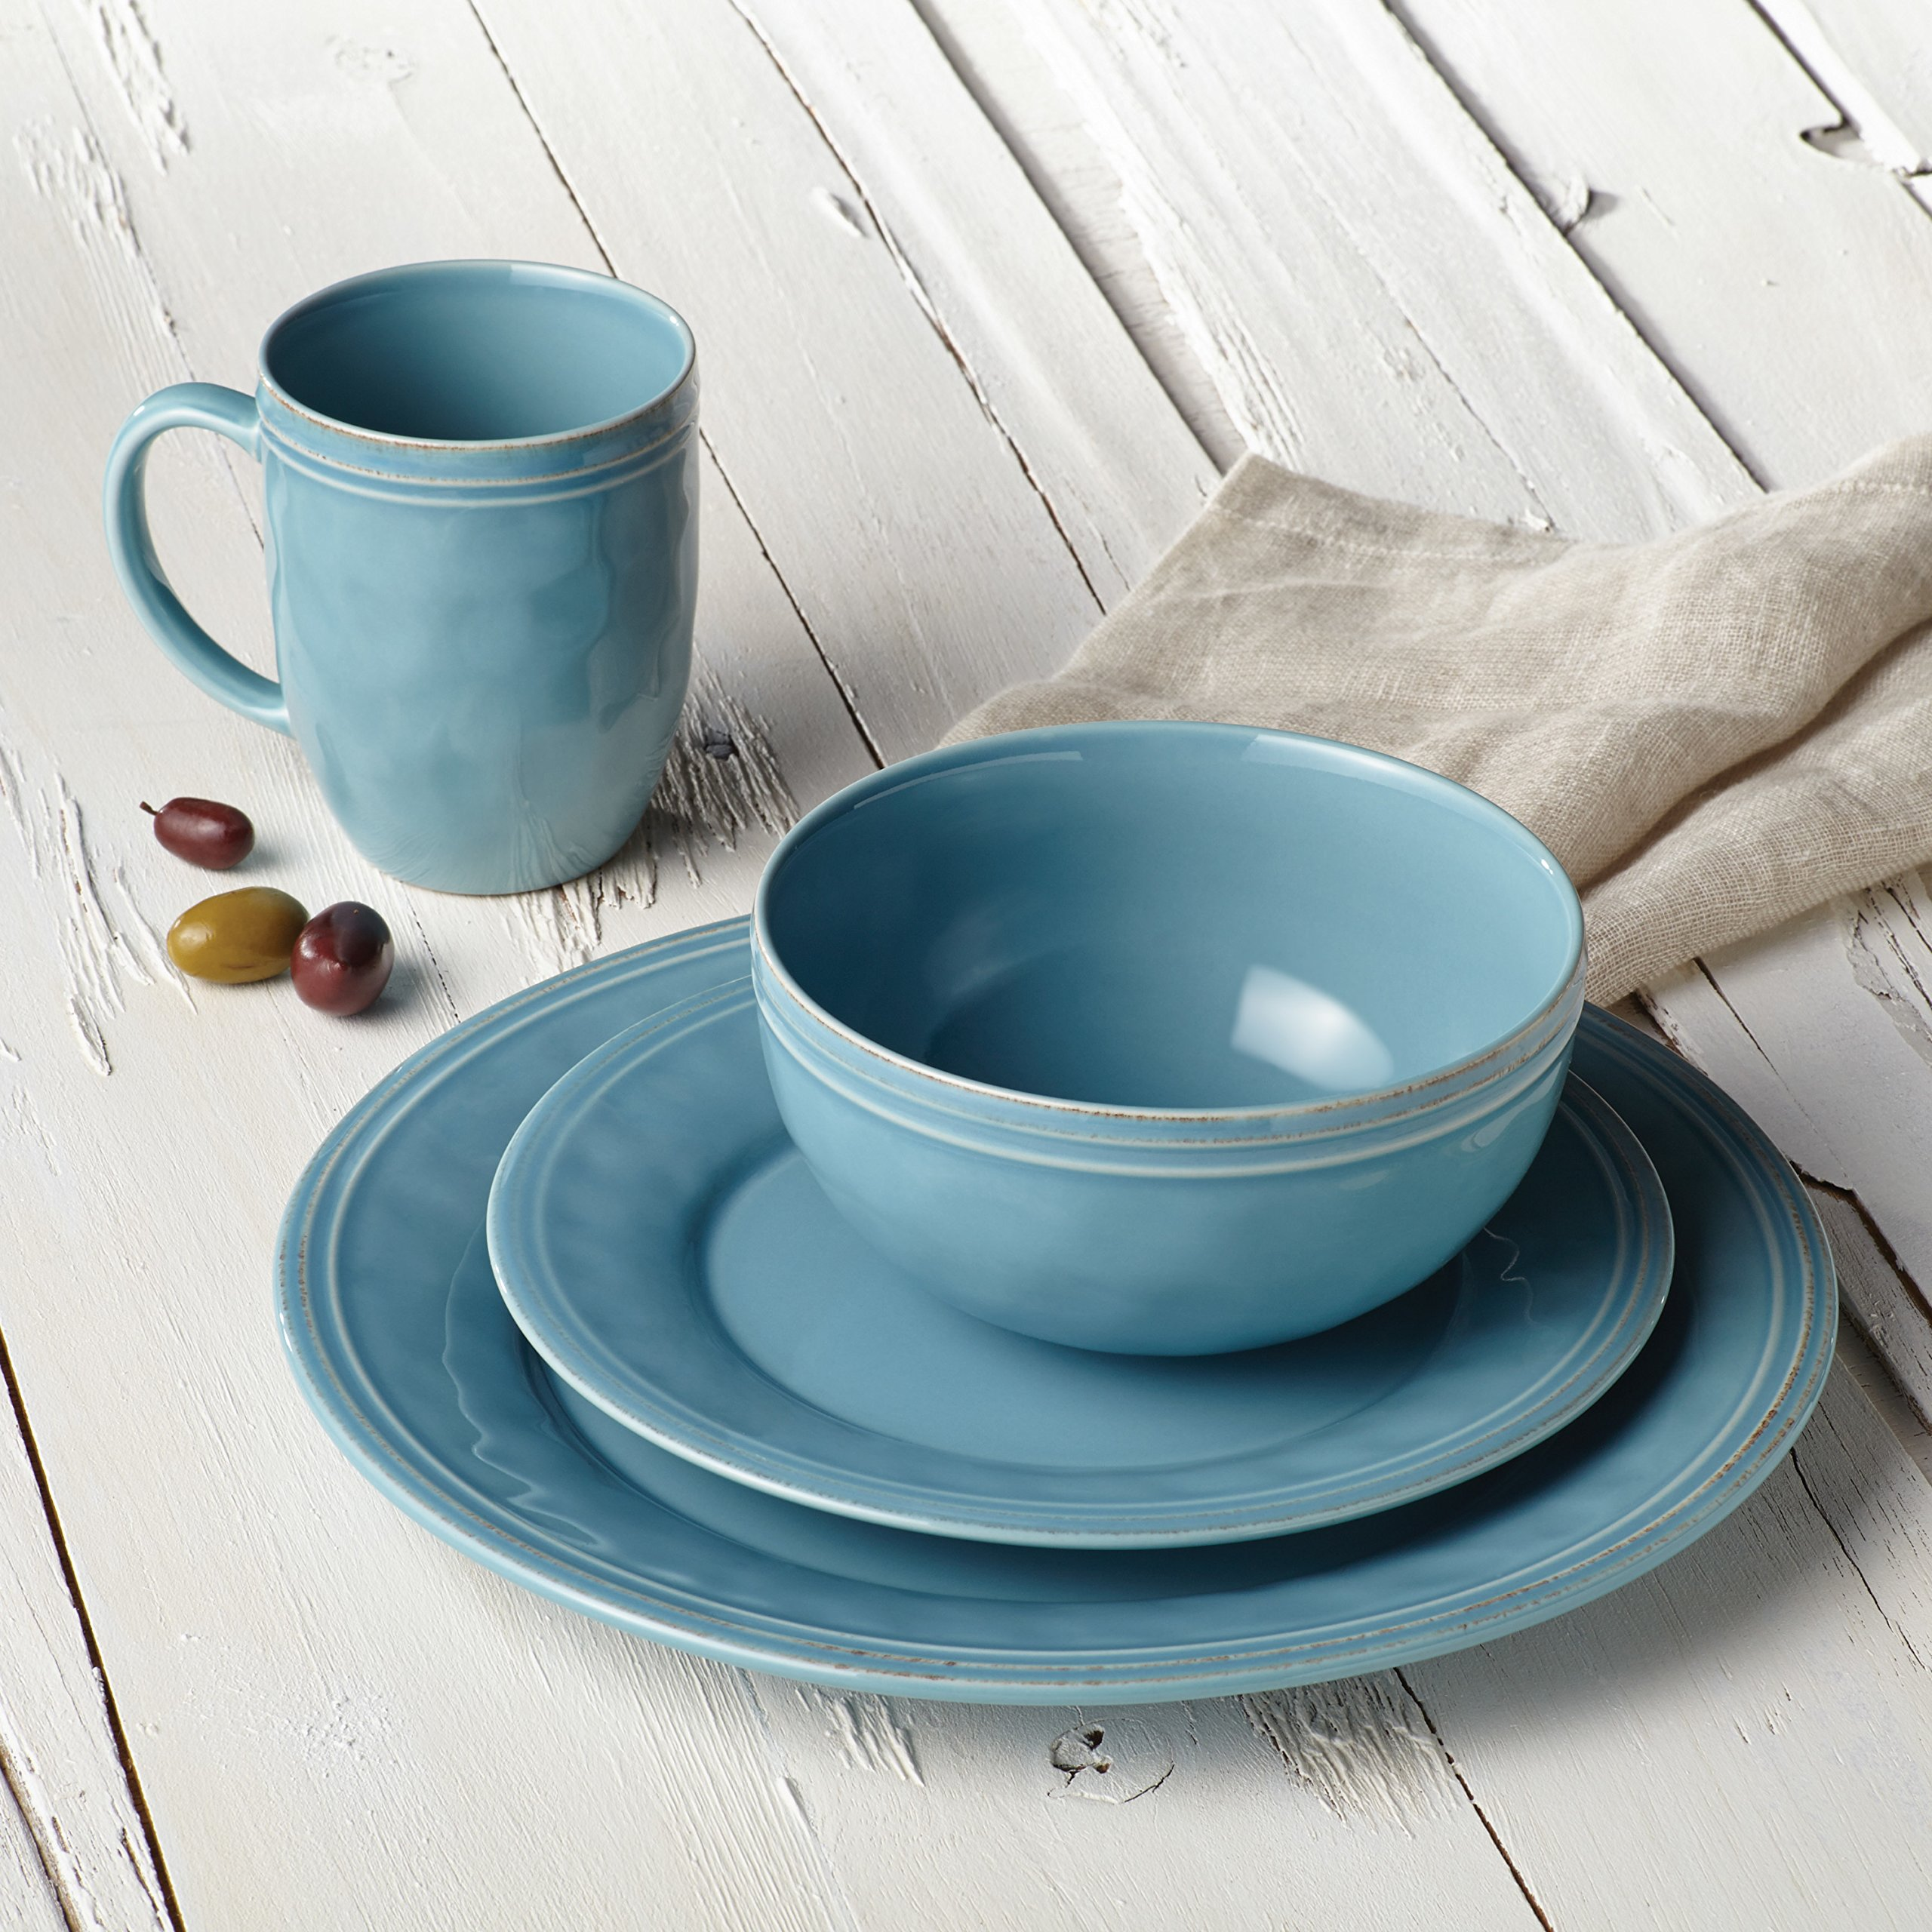 Rachael Ray Cucina Dinnerware 16-Piece Stoneware Dinnerware Set, Agave Blue by Rachael Ray (Image #13)